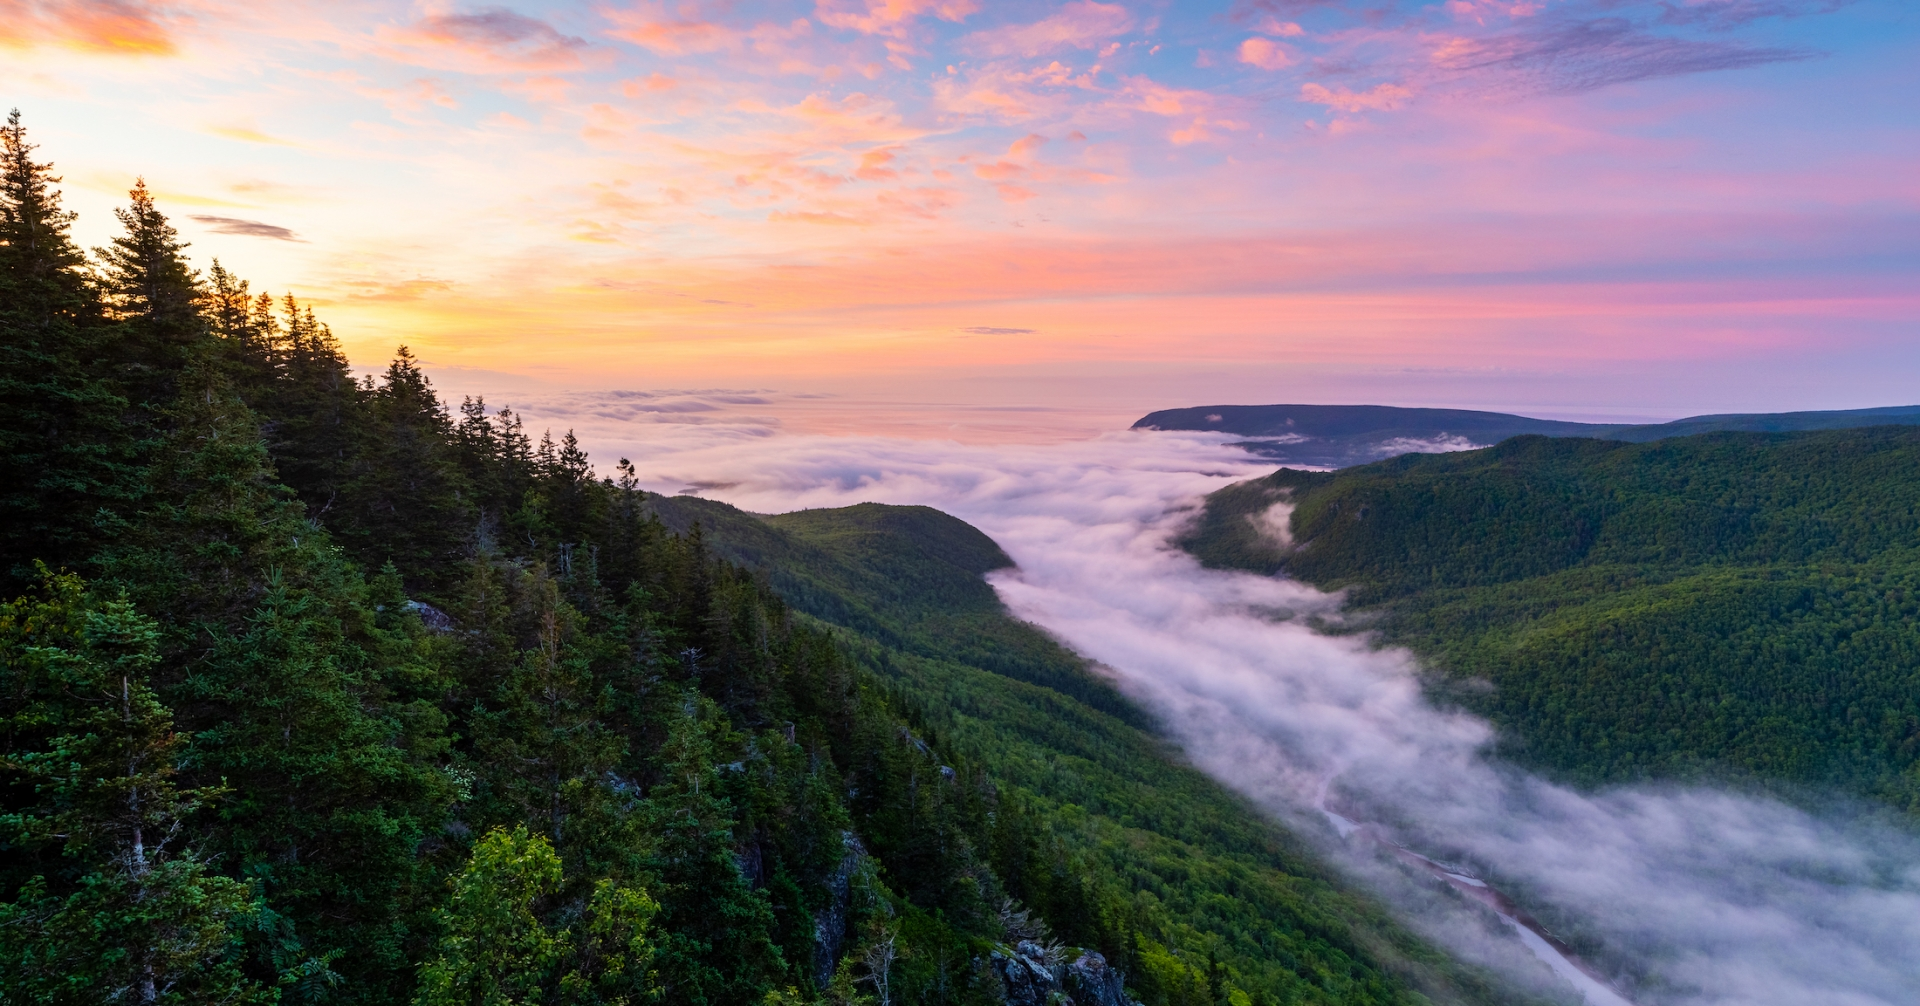 low fog rolls into wooded valley from the ocean